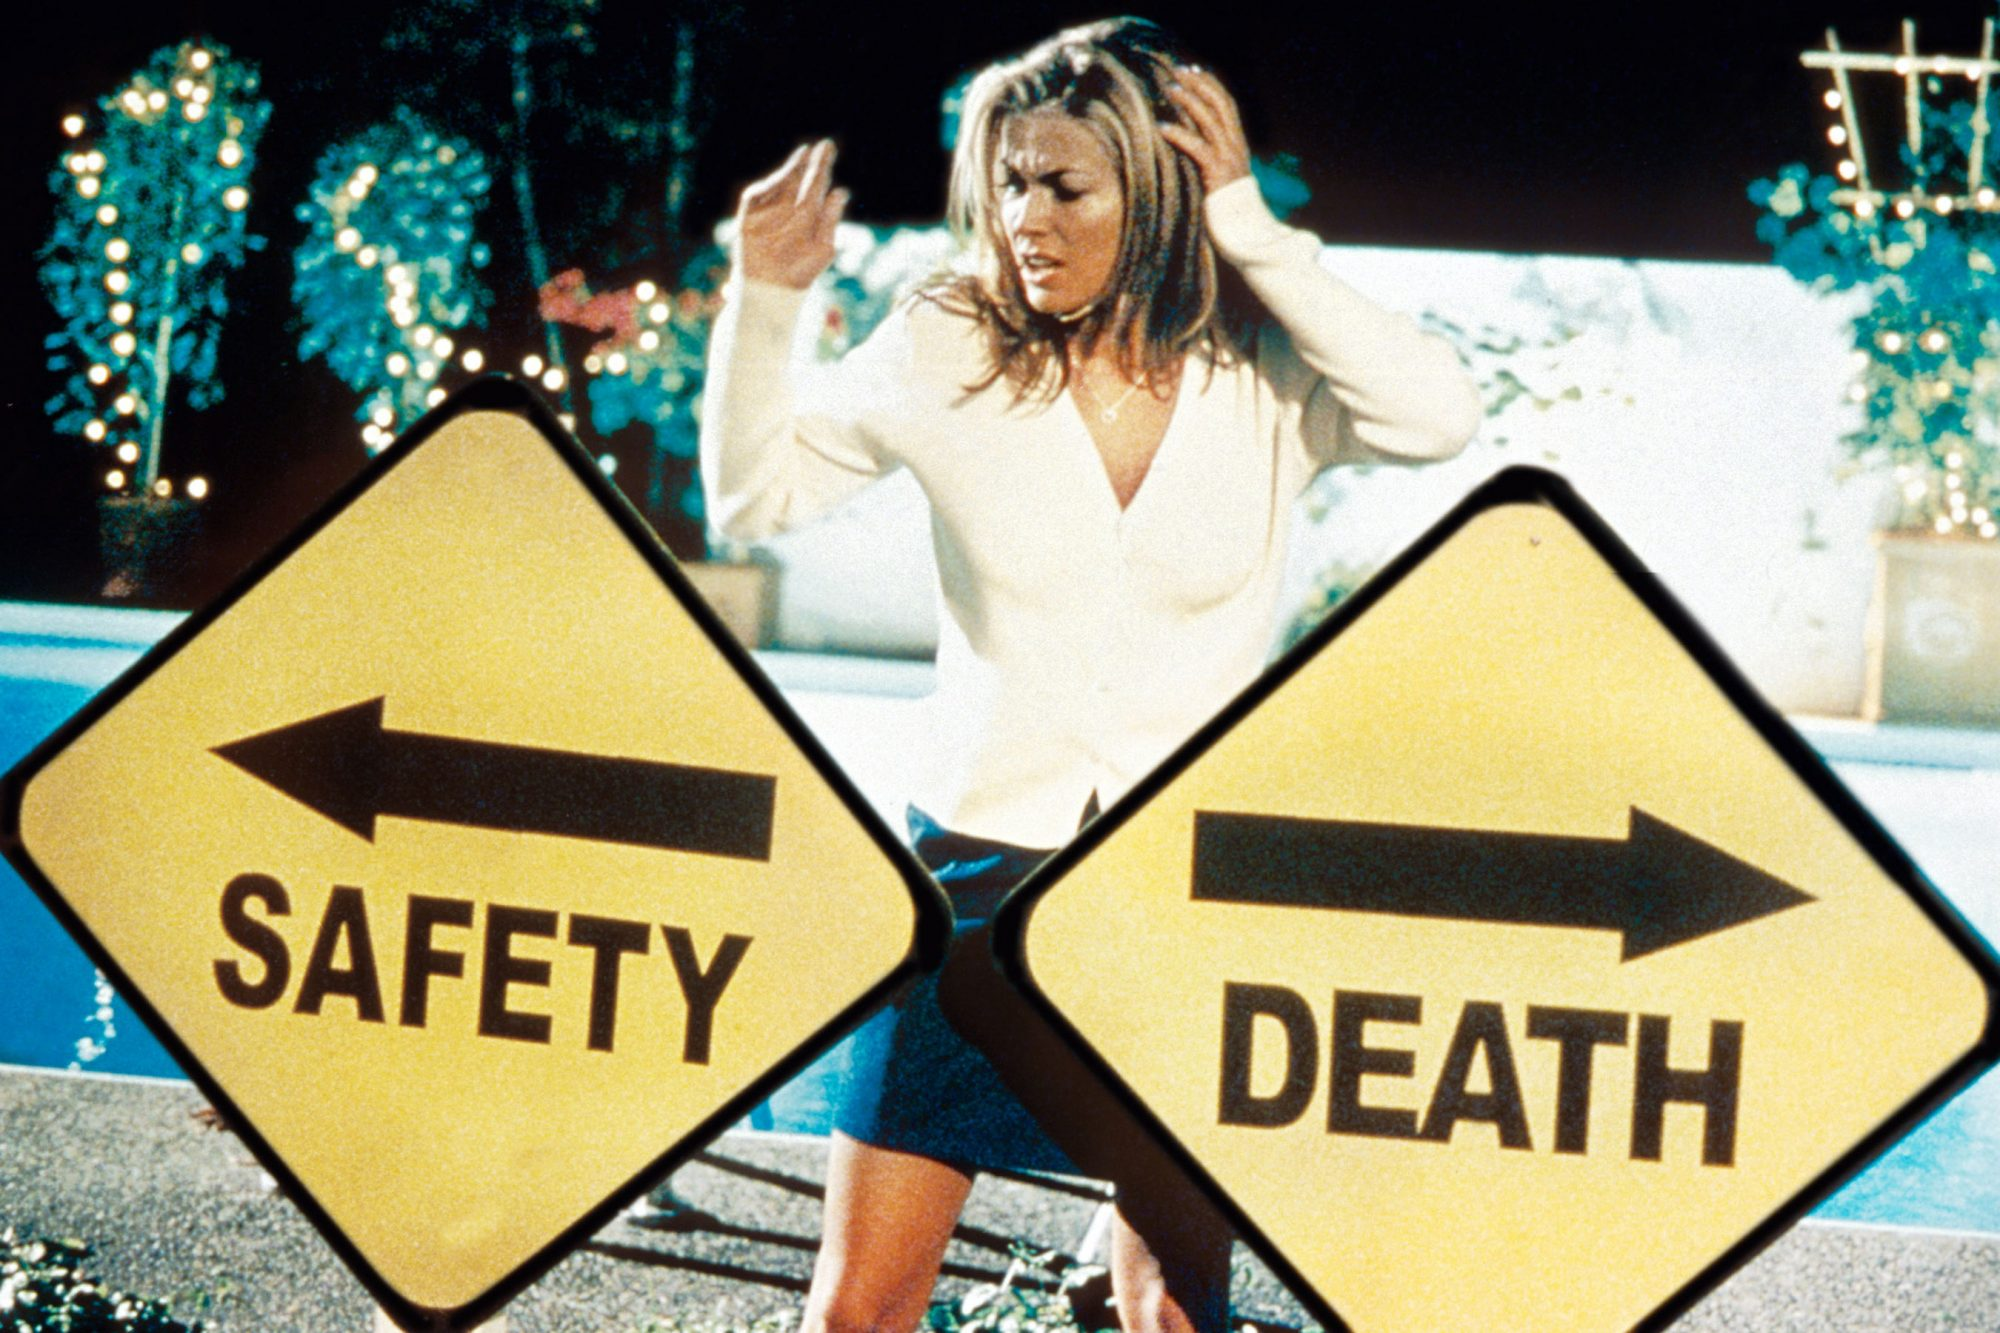 SCARY MOVIE, Carmen Electra, 2000, ©Dimension Films/courtesy Everett Collection